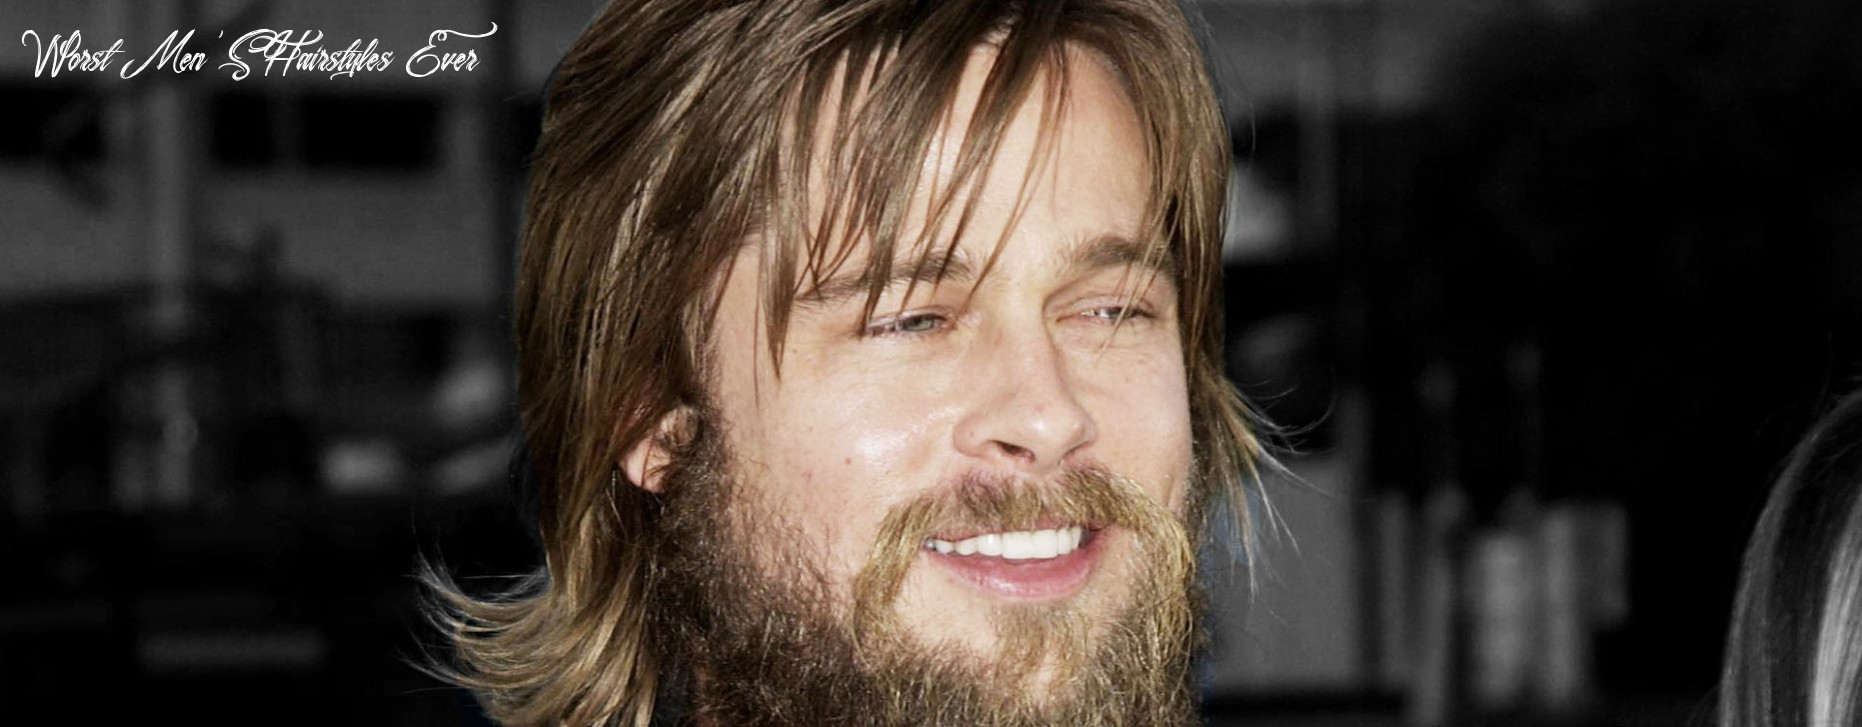 The 10 Worst Haircuts of All Time   GQ